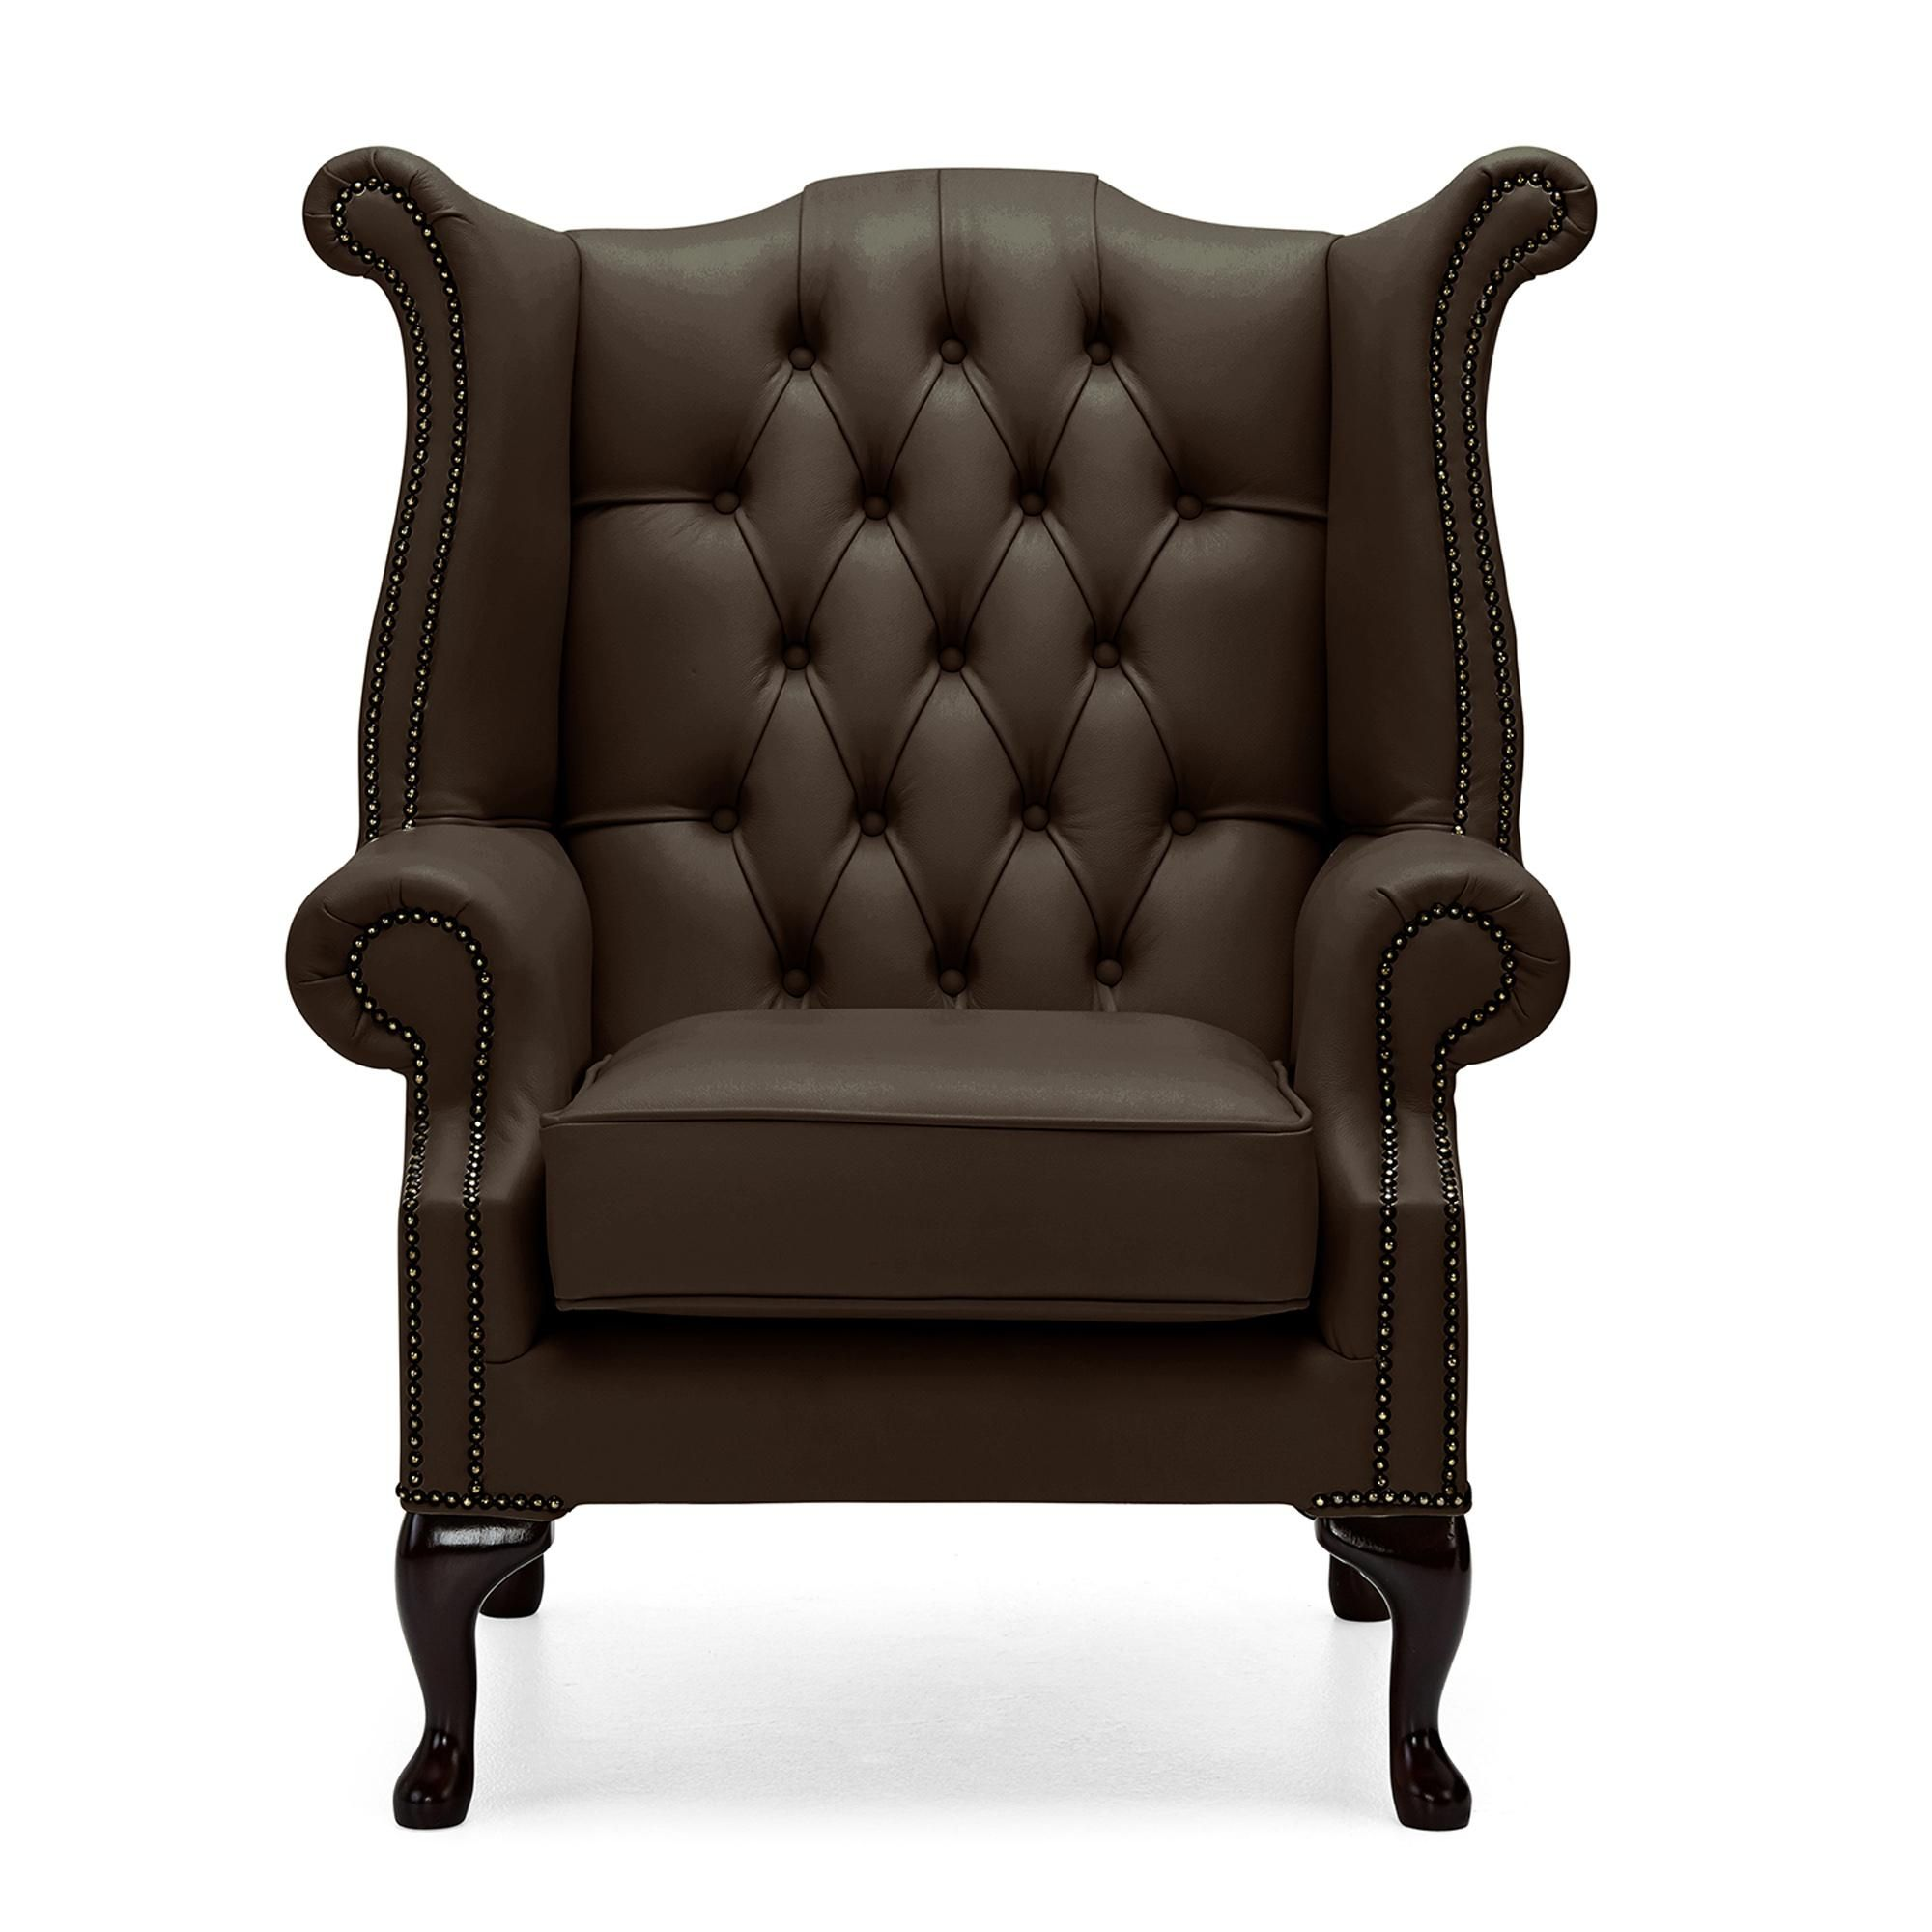 Belvedere Chesterfield Leather Queen Anne Armchair In 2020